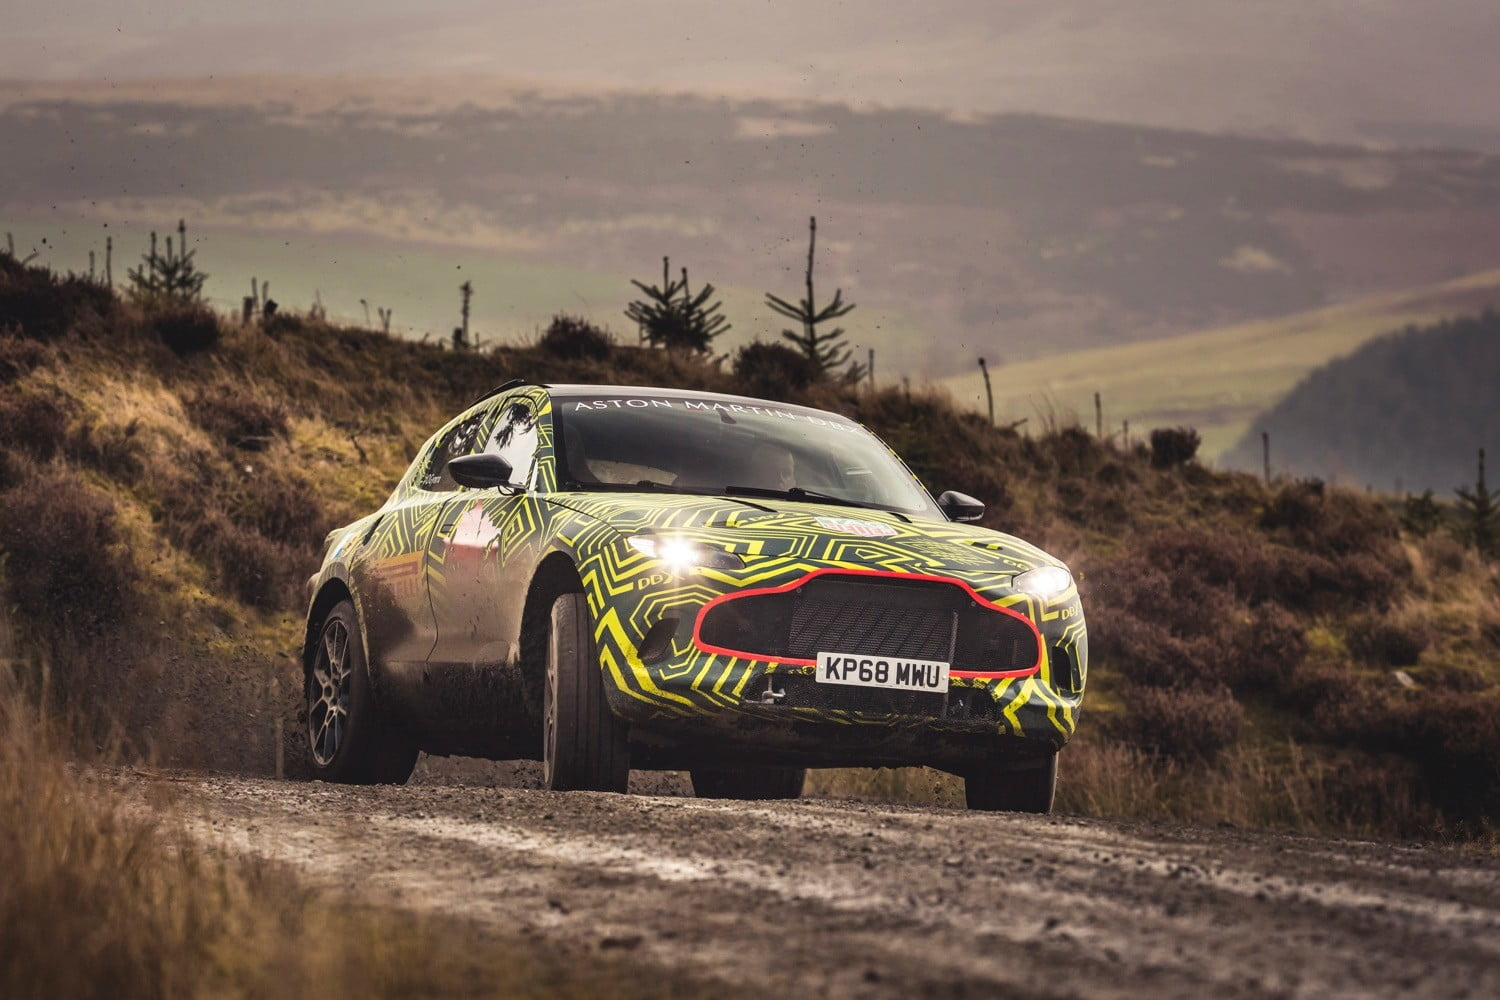 The DBX SUV will go where no Aston Martin has gone before